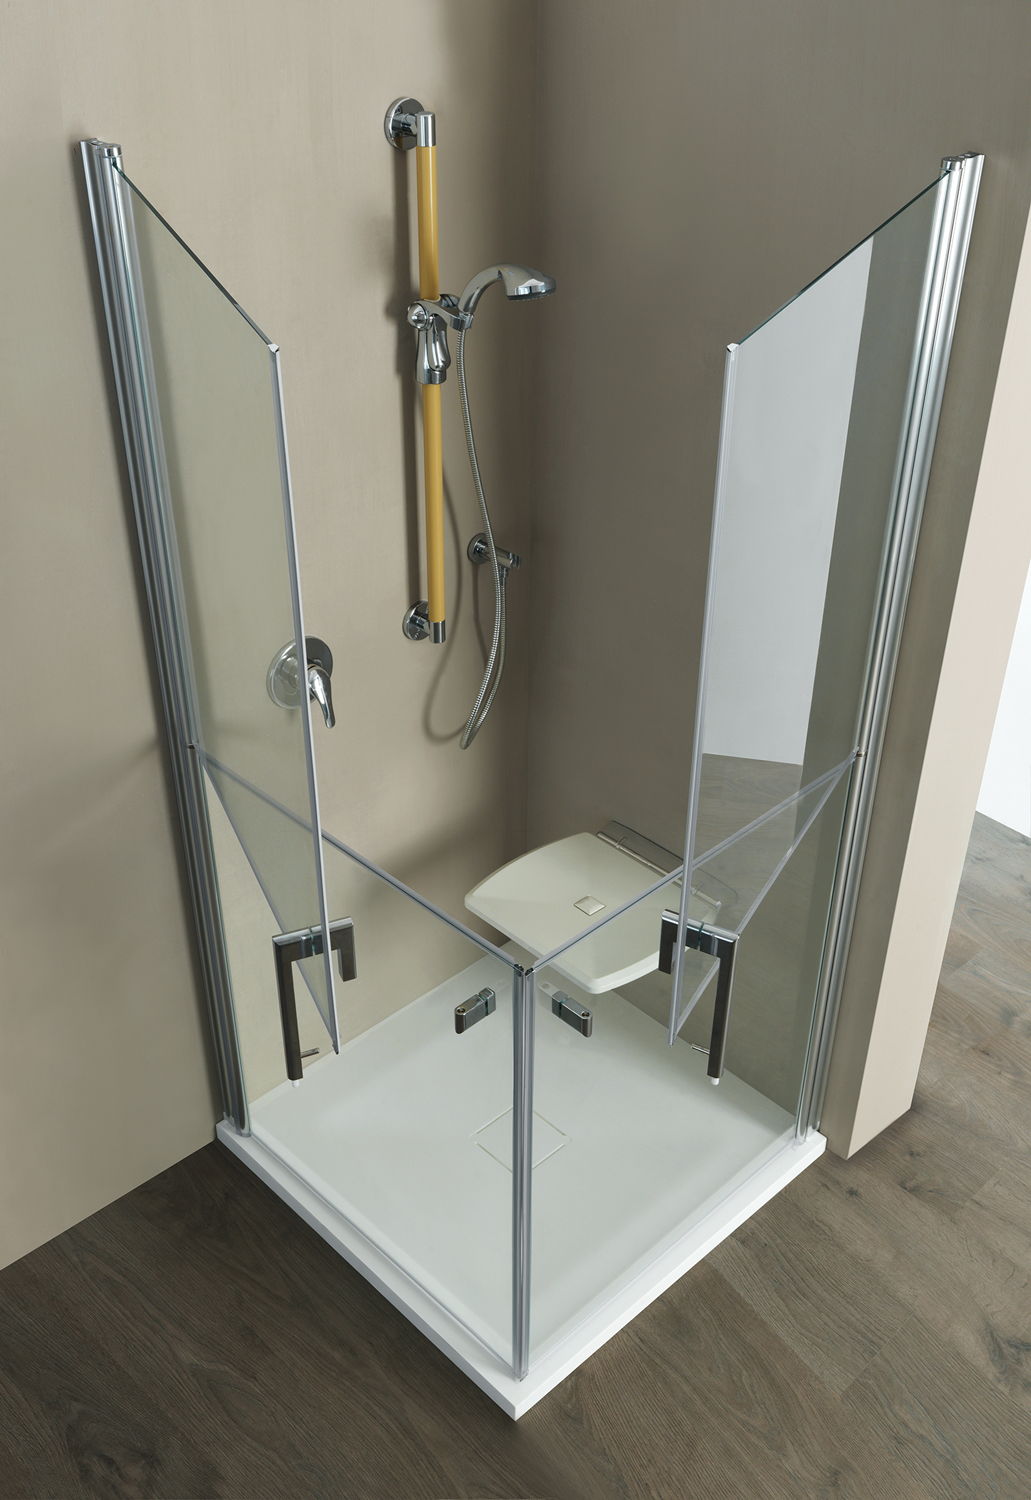 Shower cabin with door having a separate openings (lower and upper part separately) - BE005